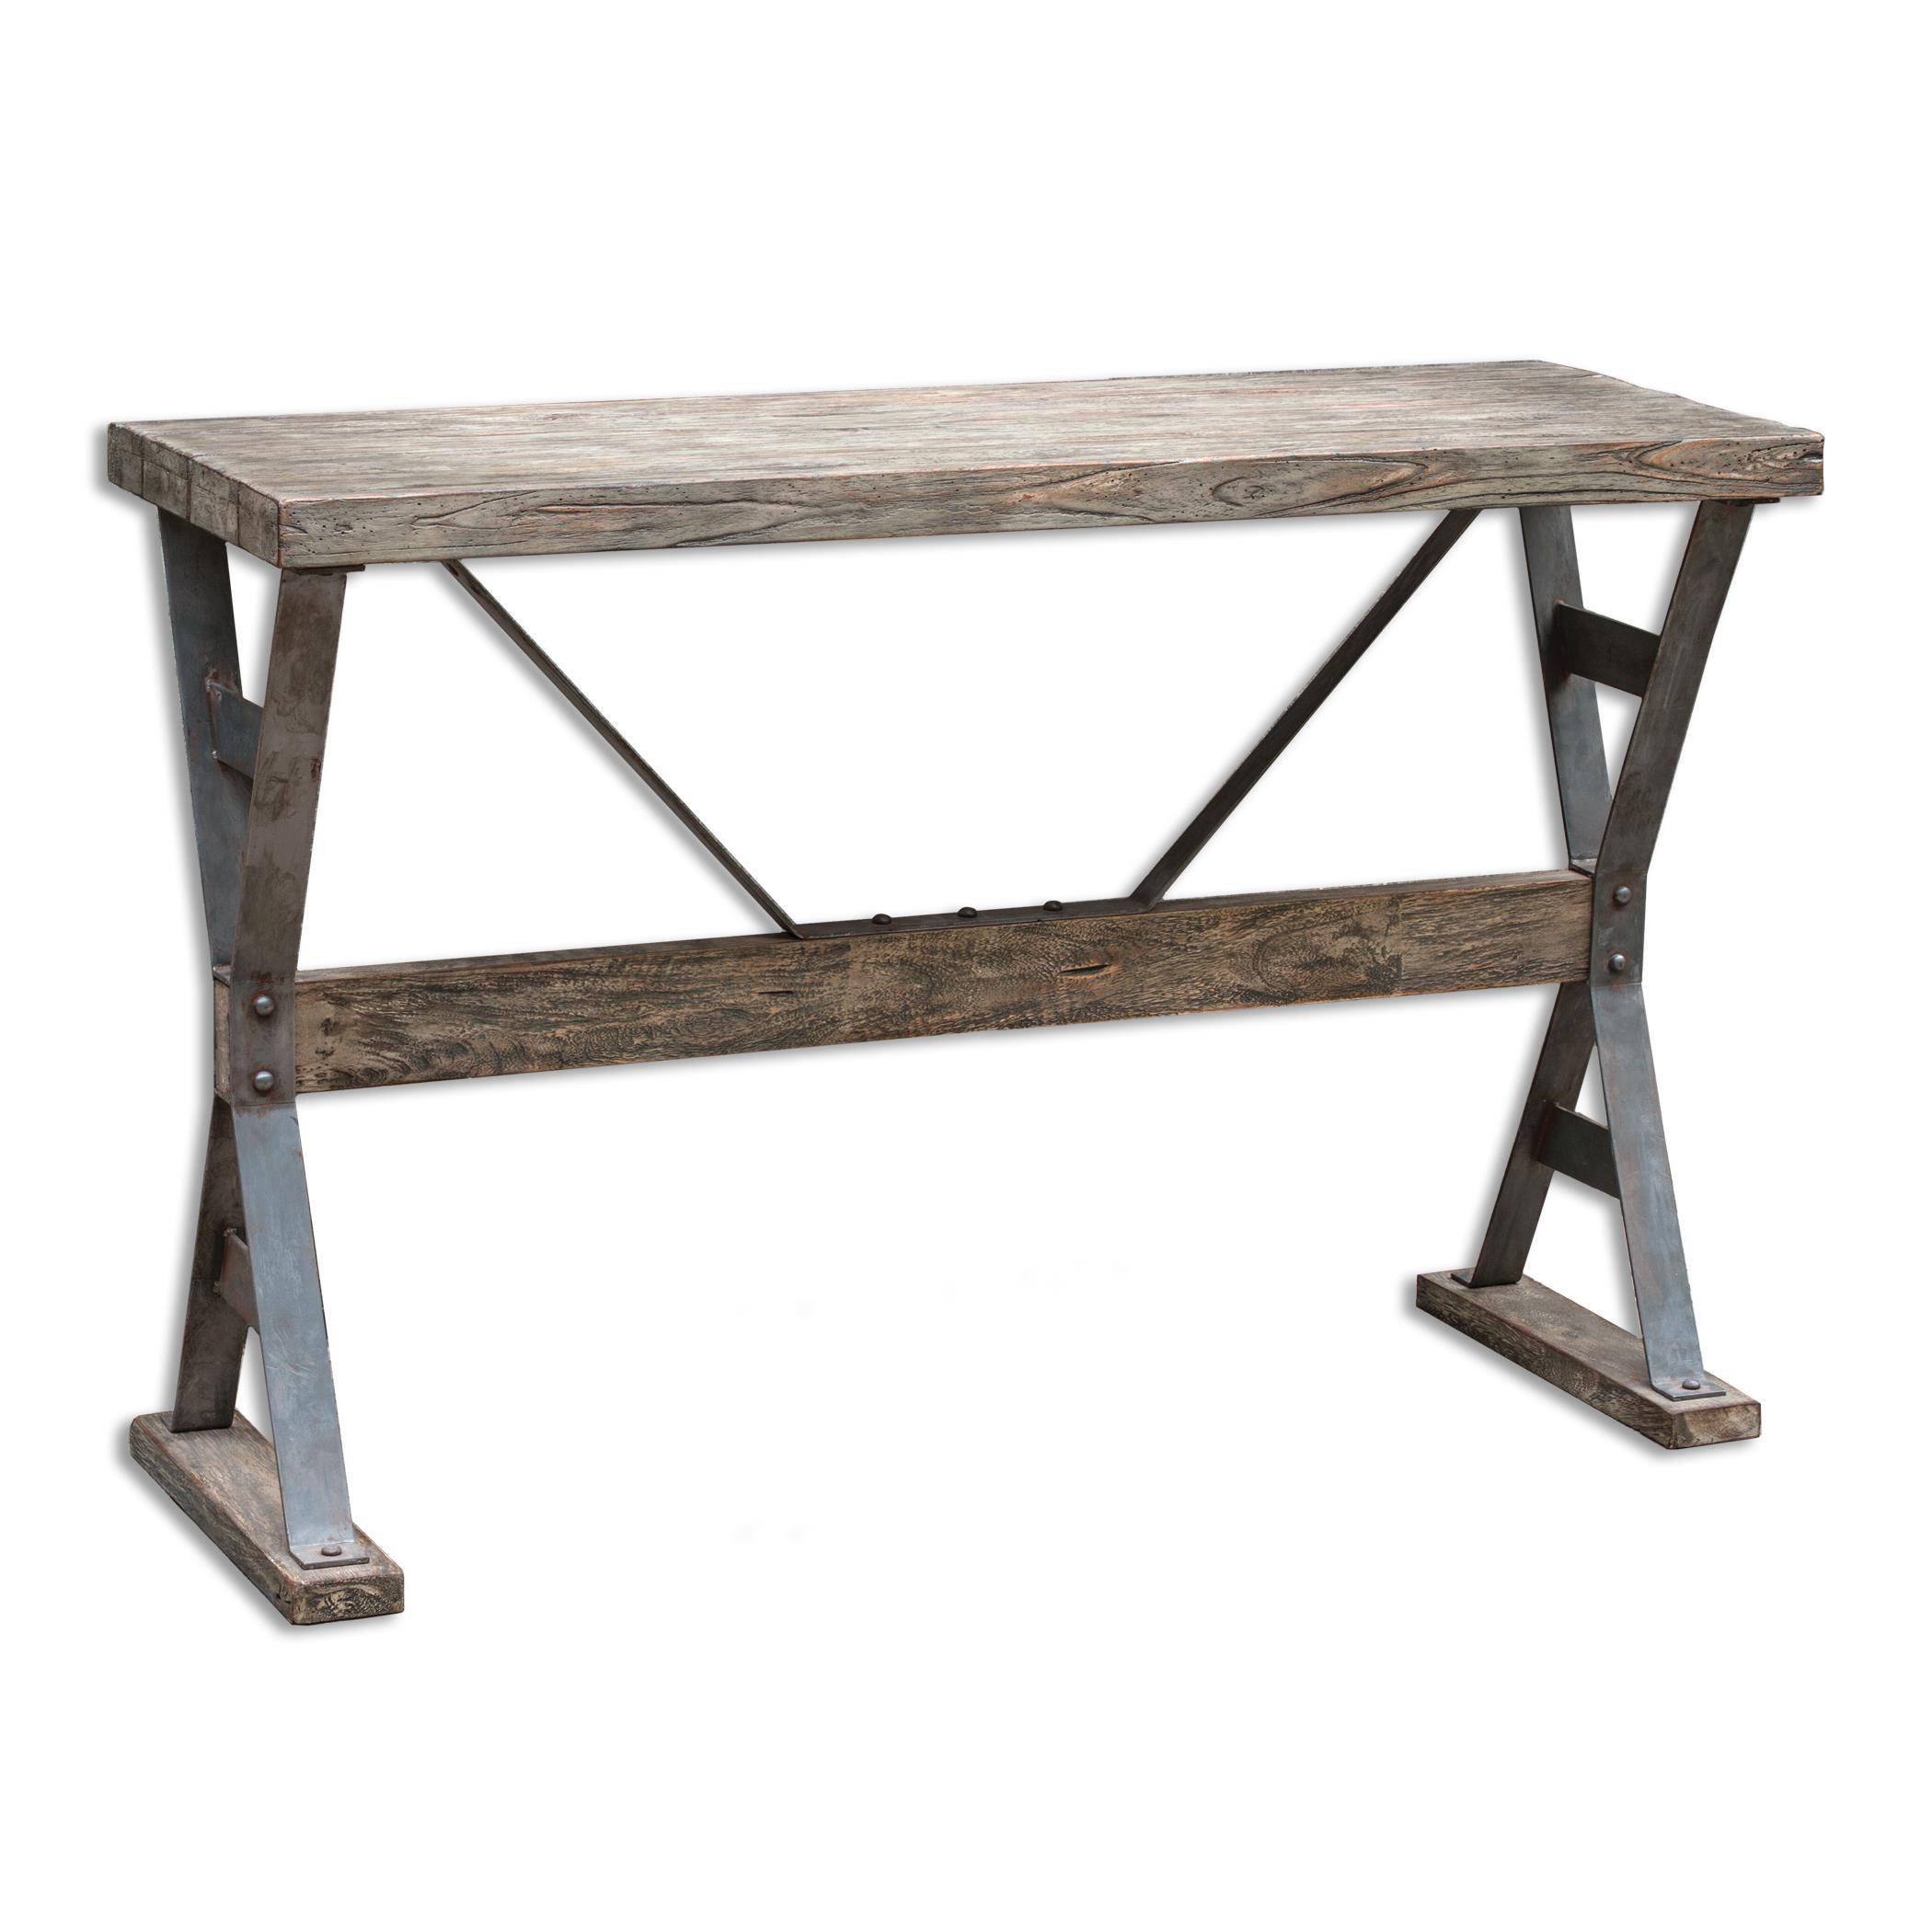 Uttermost Accent Furniture Makoto Wooden Industrial Sofa Table - Item Number: 25656